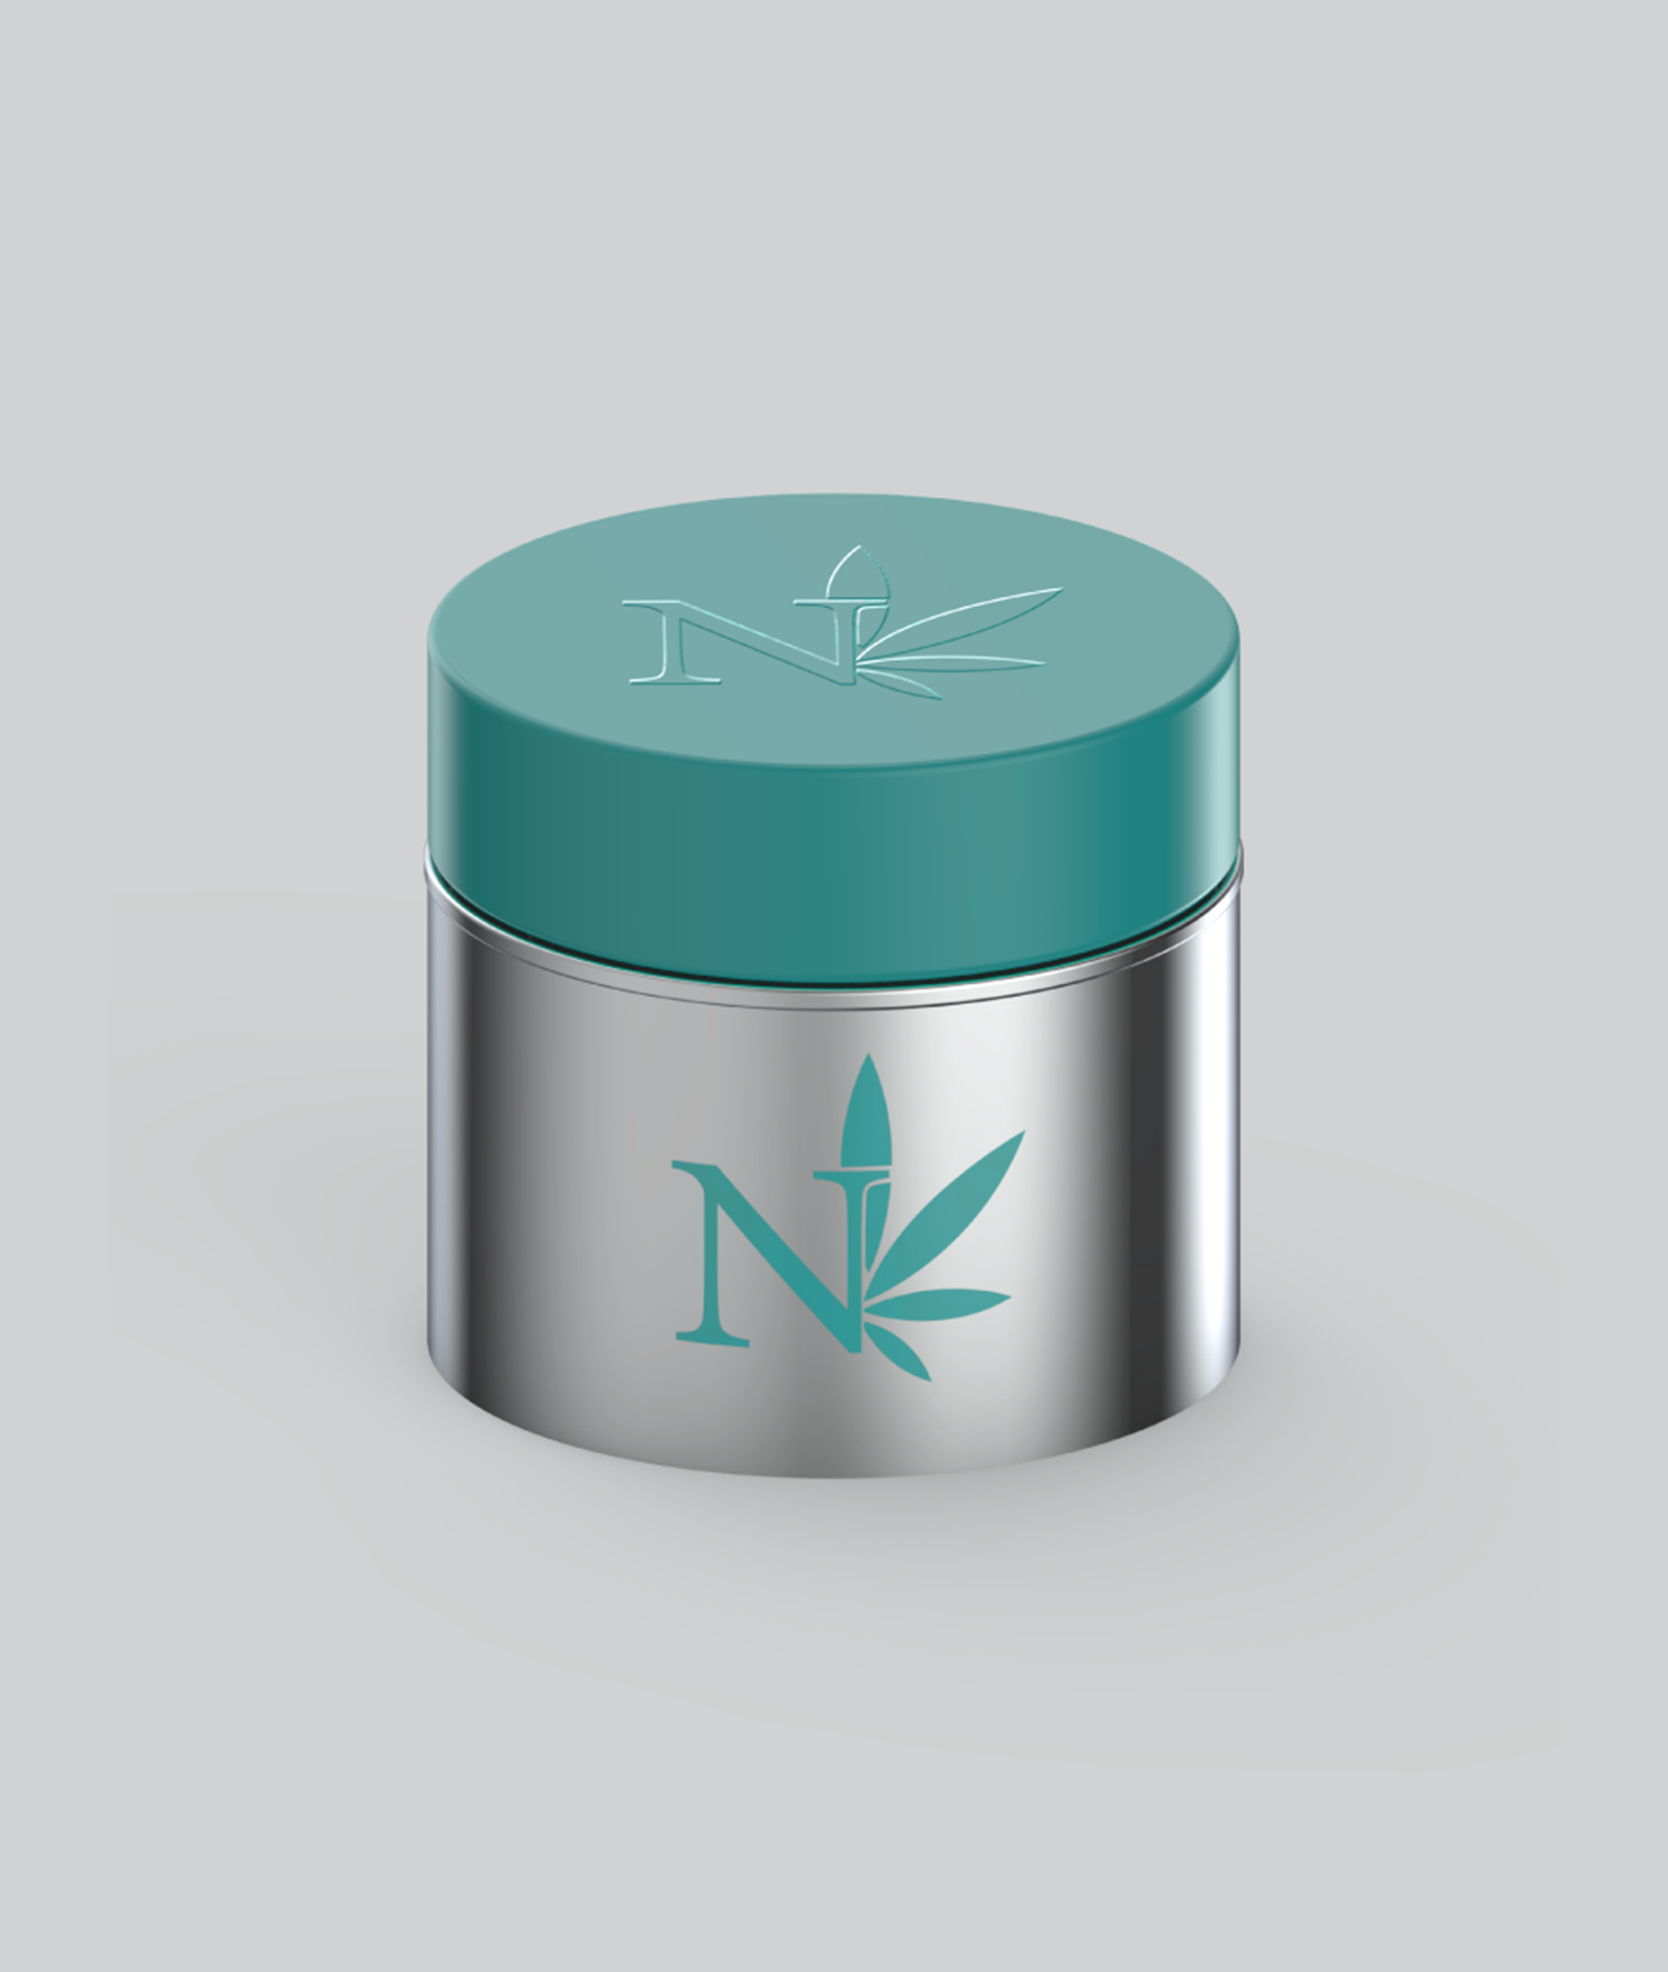 nleaf-custom-round-metal-tin-containers